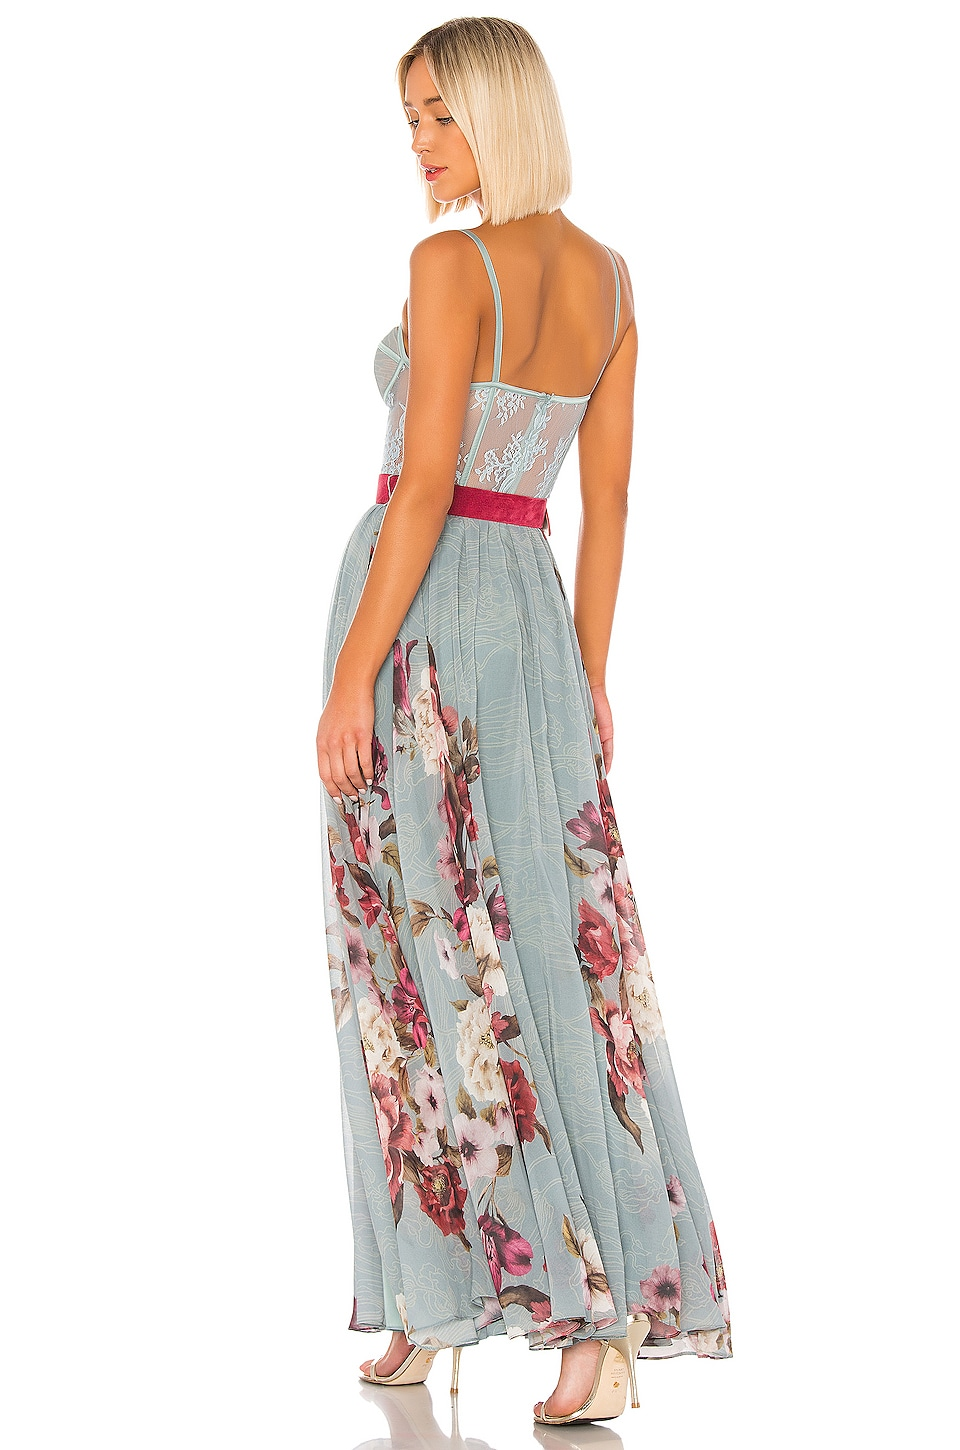 Peony Bustier Maxi Dress, view 3, click to view large image.